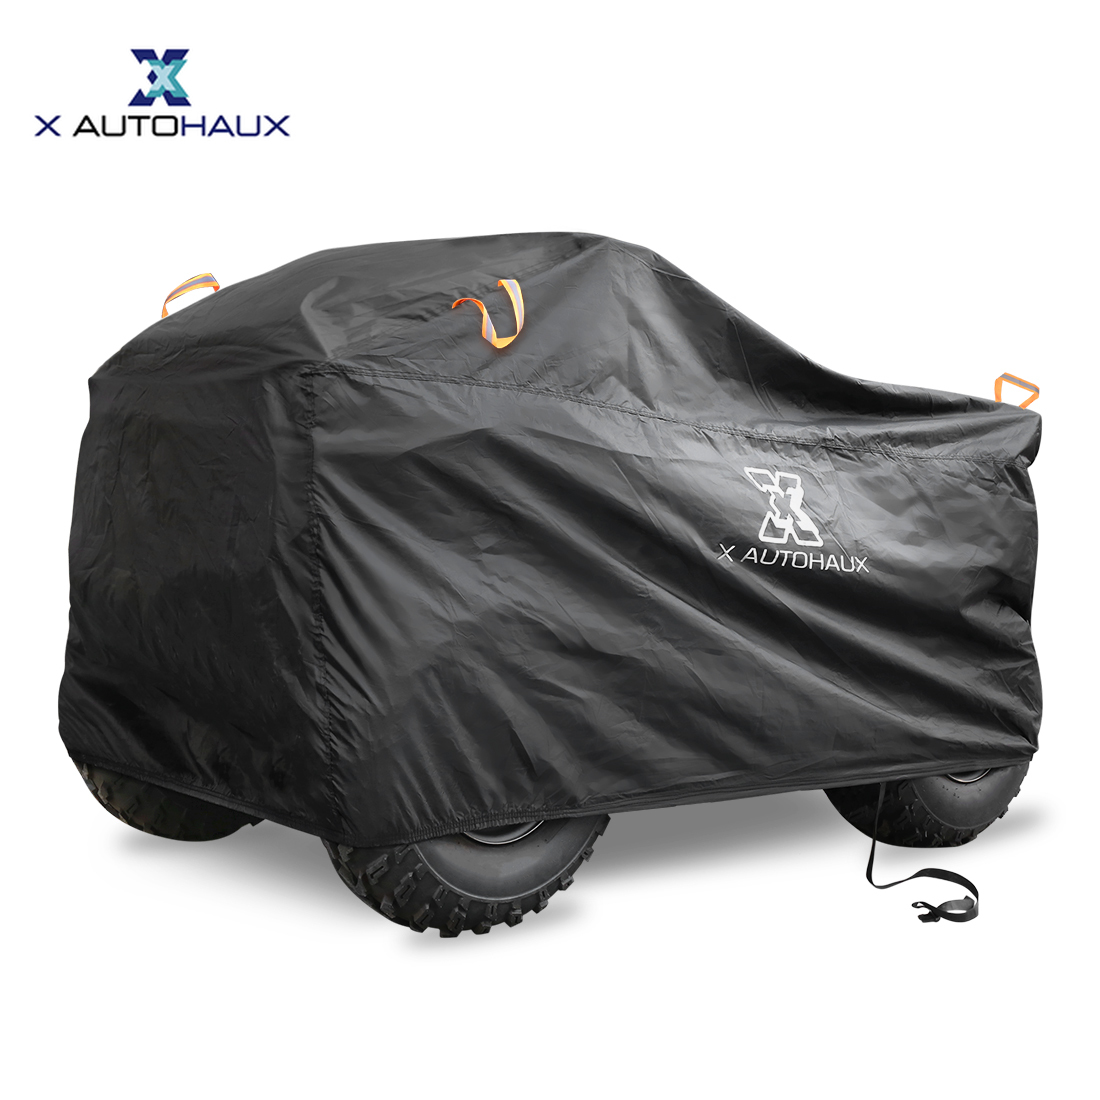 X Autohaux Quad ATV Cover Waterproof Snowproof Anti-UV Beach Protector With Reflective Strips Universal Quad Bike ATV Cover